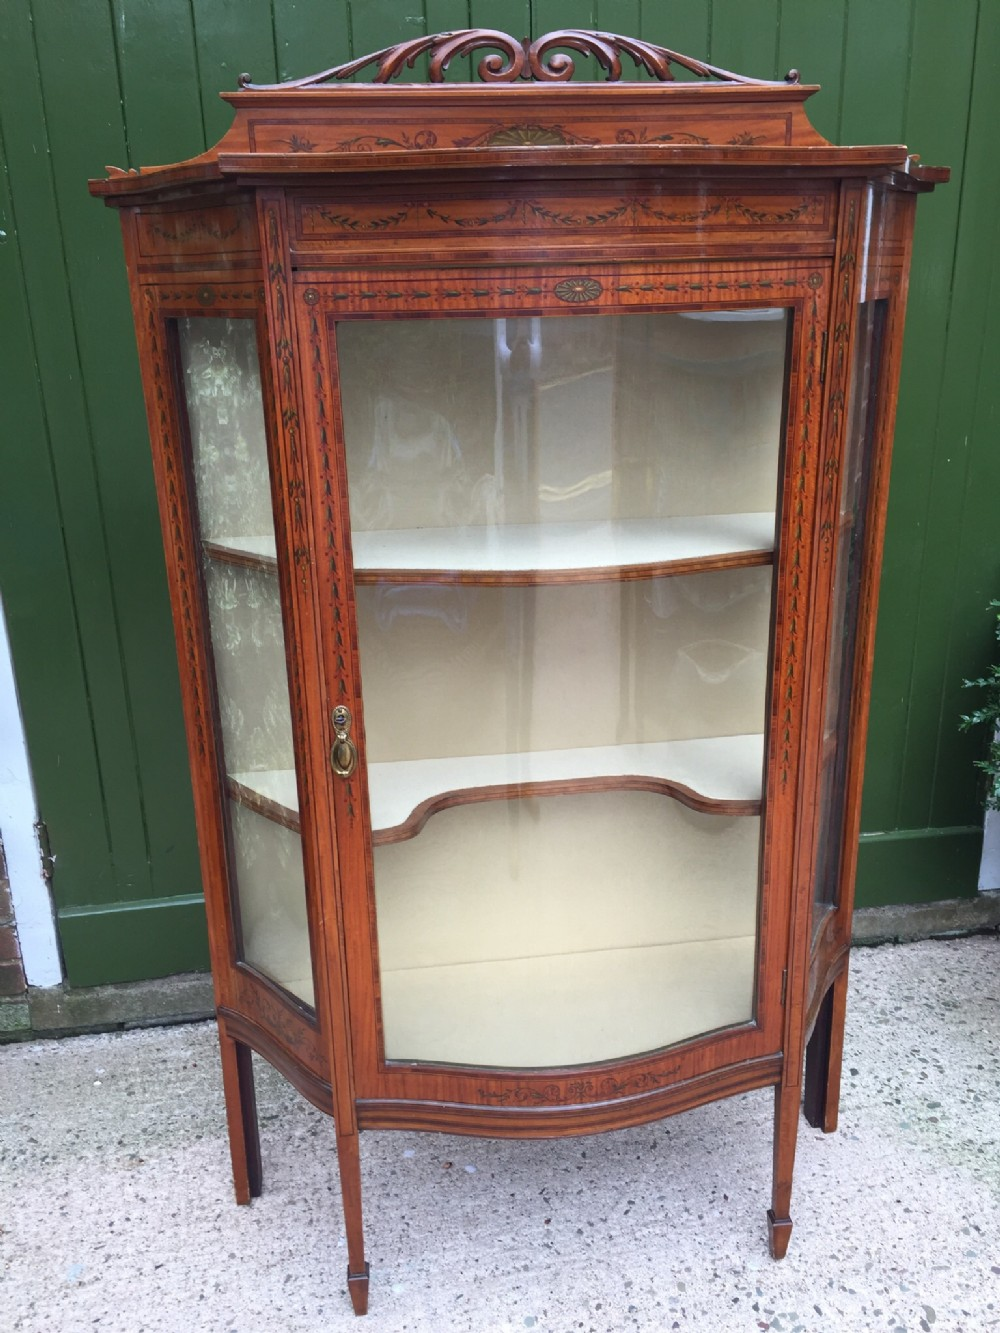 late c19thearly c20th edwardian period decorated satinwood display cabinet or vitrine in the adam revival style